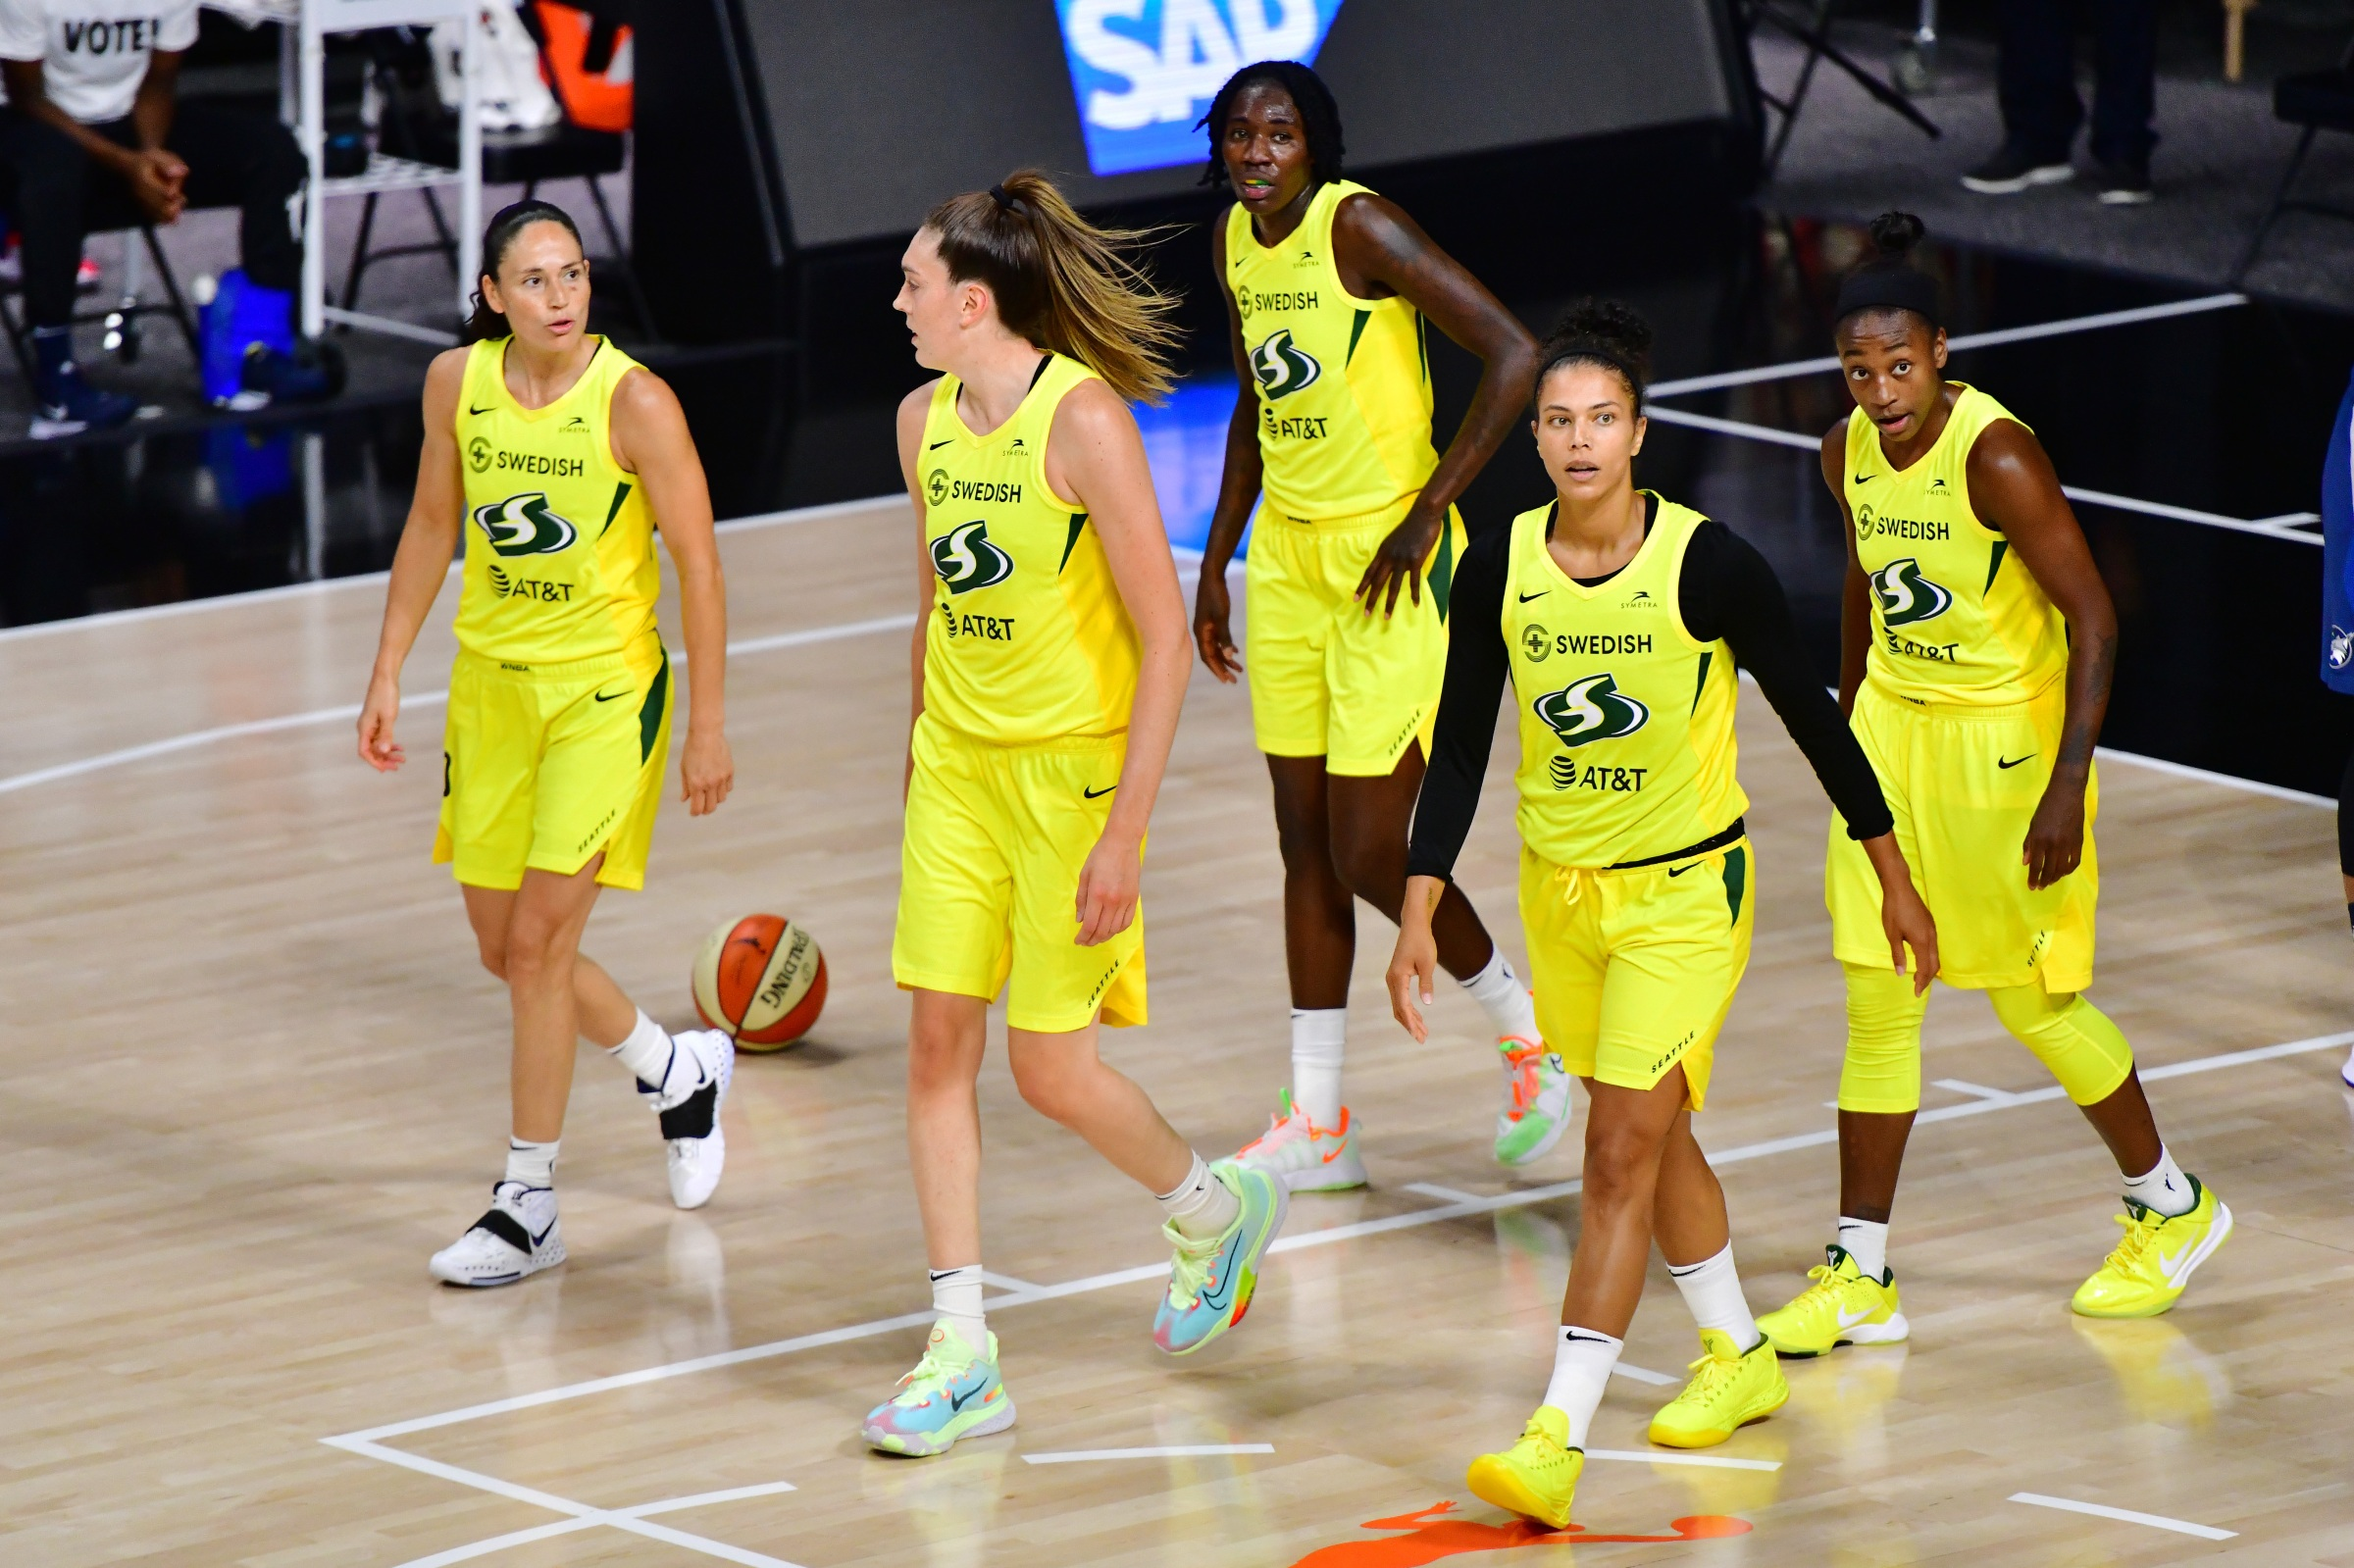 Sue Bird #10, Breanna Stewart #30, Natasha Howard #6, Alysha Clark #32, and Jewell Loyd #24 of the Seattle Storm walk across the court after a foul during the first half of Game One of their Third Round playoff against the Minnesota Lynx at Feld Entertainment Center on September 22, 2020 in Palmetto, Florida.